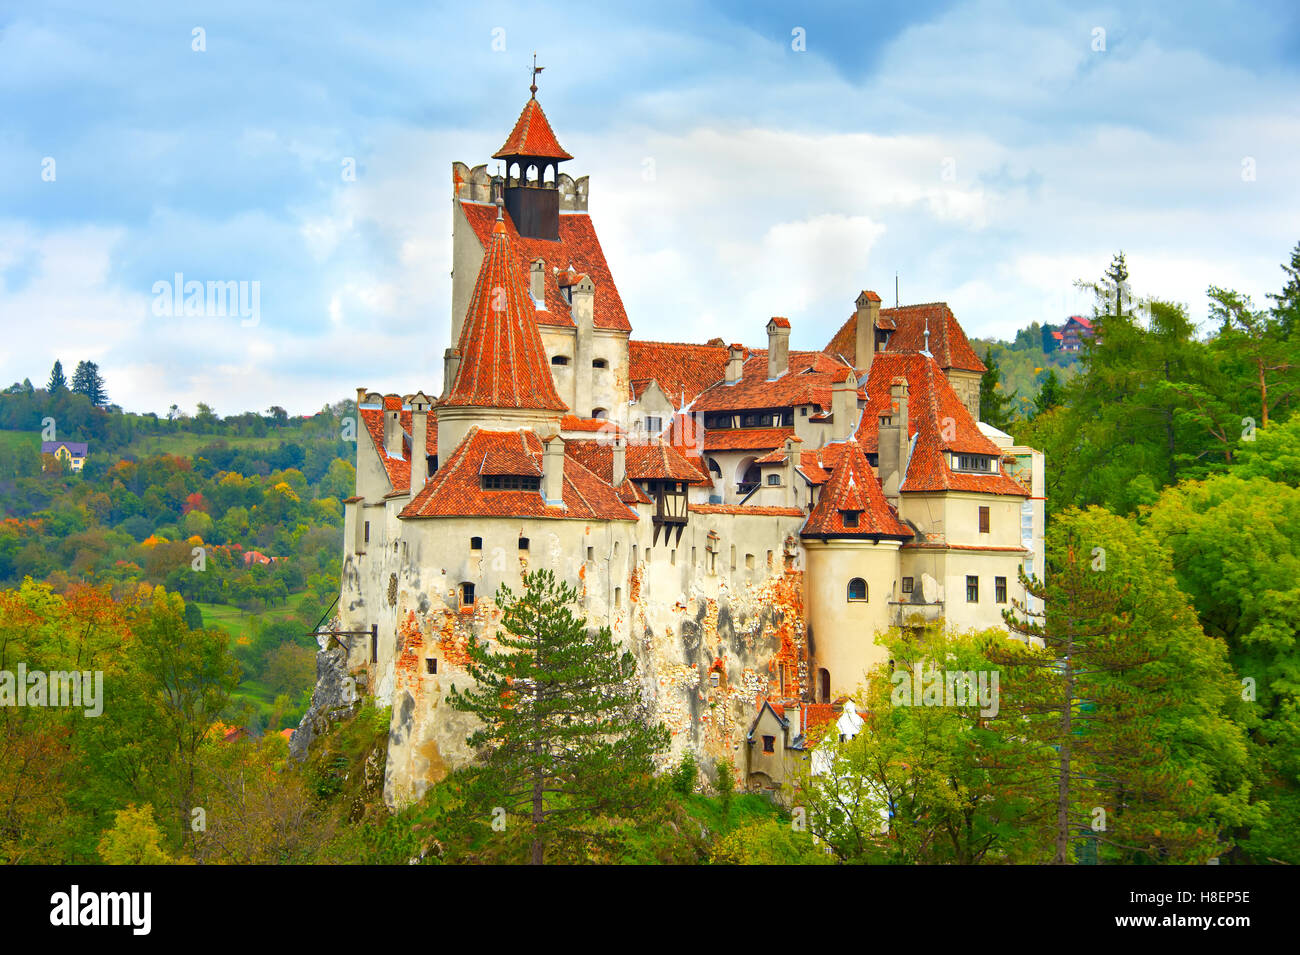 The medieval Castle of Bran, known for the myth of Dracula. - Stock Image